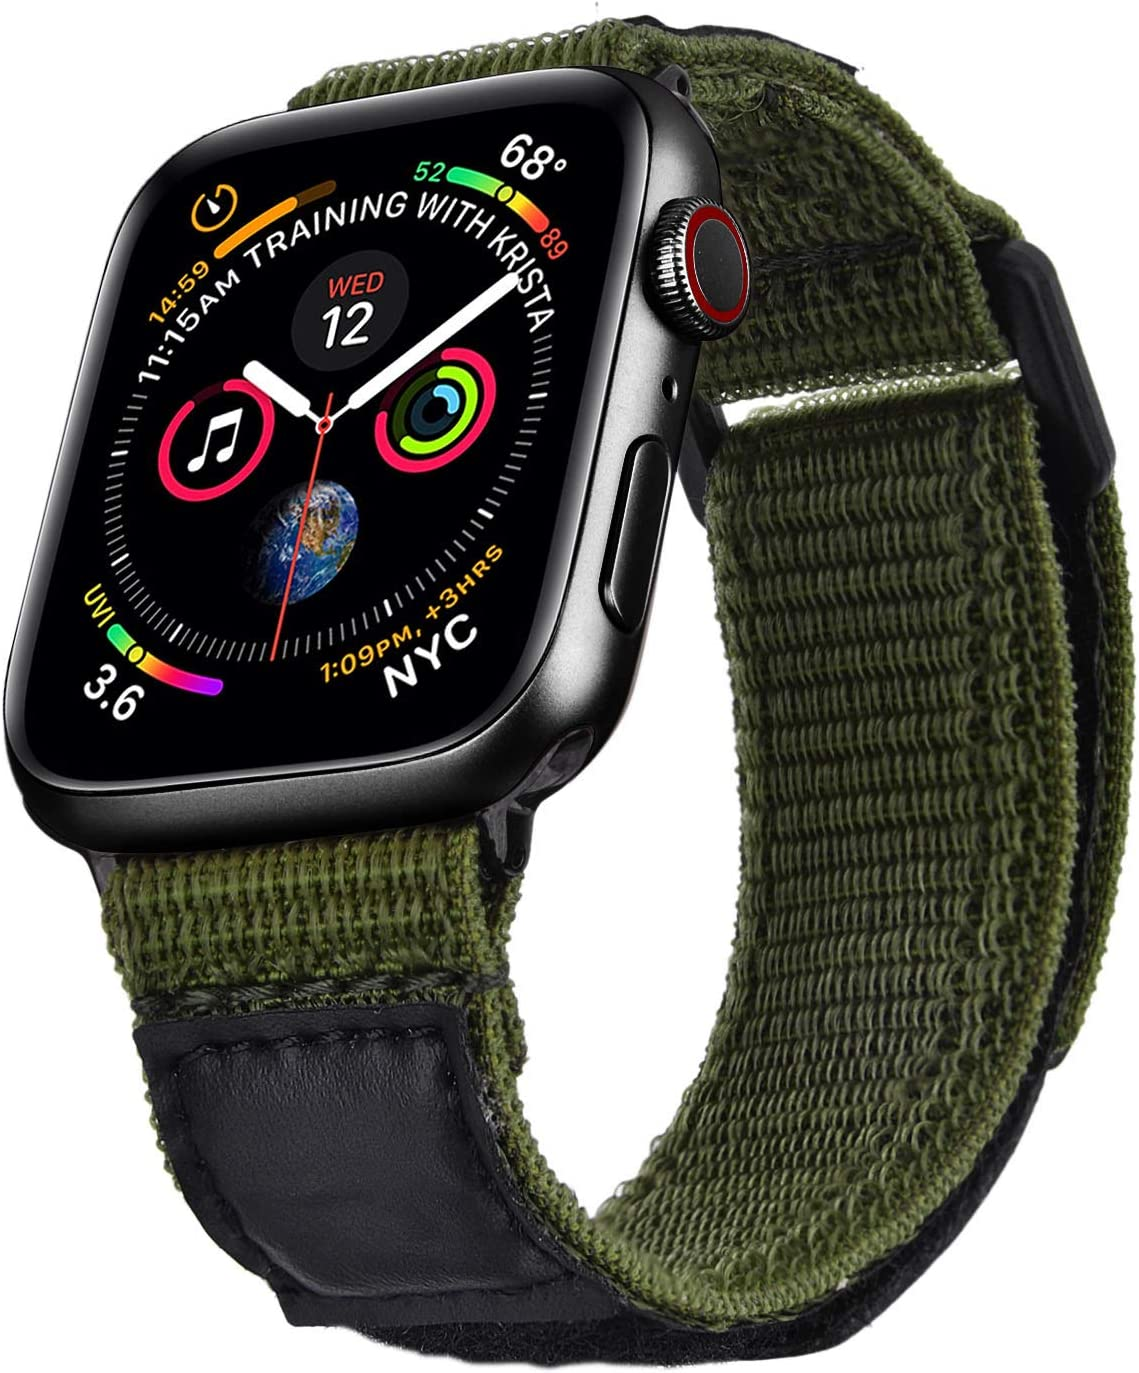 V-MORO Nylon Band Compatible with 40mm Apple Watch Bands 38mm Men Women Soft Breathable Woven Loop Strap Replacement for iWatch Series 5 4 3 2 1 40mm 38mm Sport Army Green